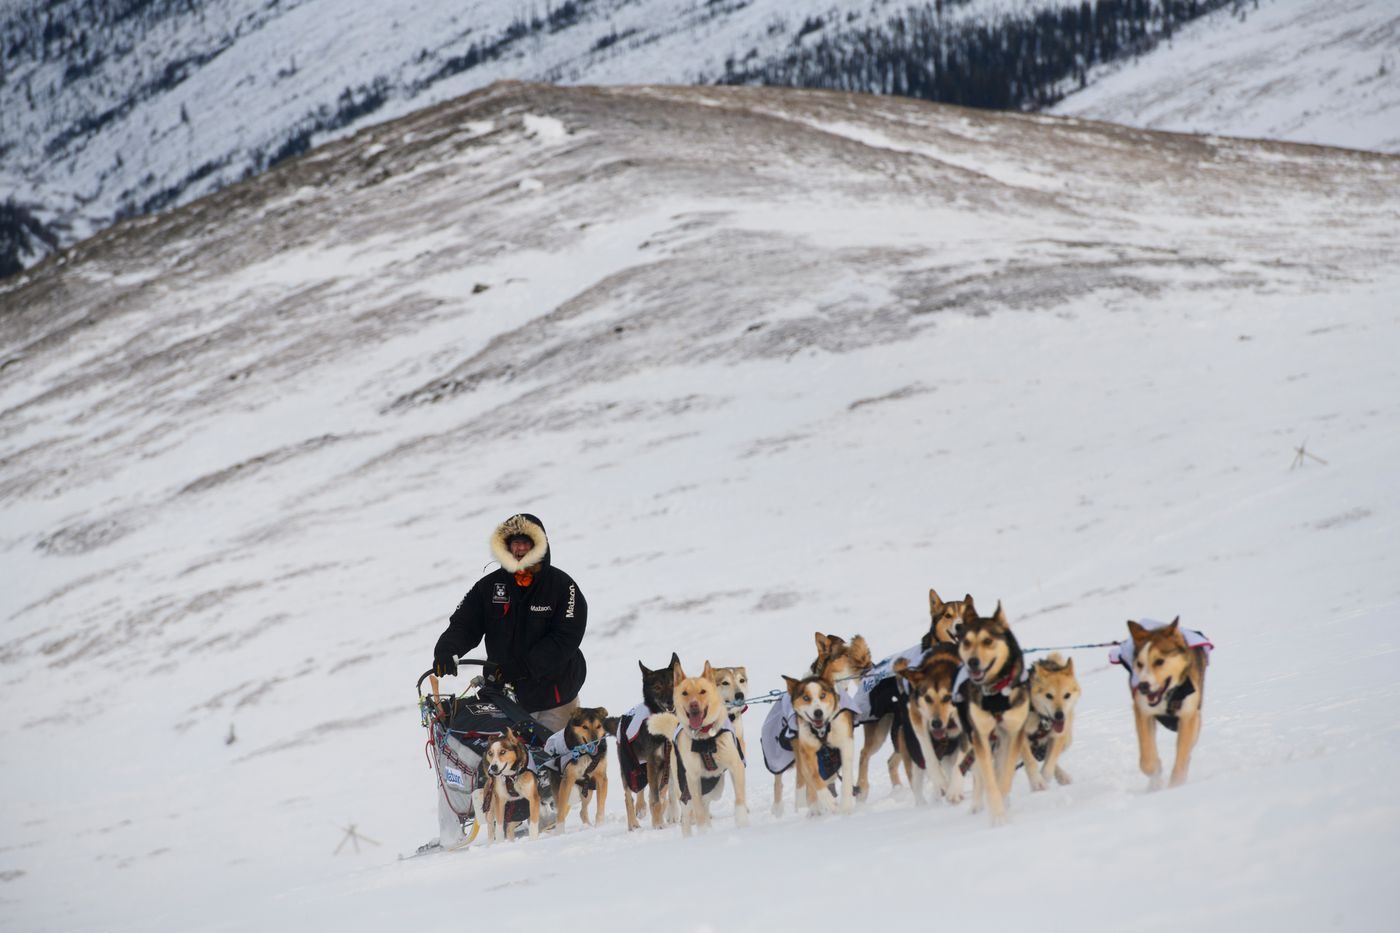 Allen Moore, of Two Rivers, climbs toward Eagle Summit with his team. Yukon Quest International Sled Dog Race frontrunners passed checkpoints along the Steese Highway on February 10, 2019. (Marc Lester / ADN)